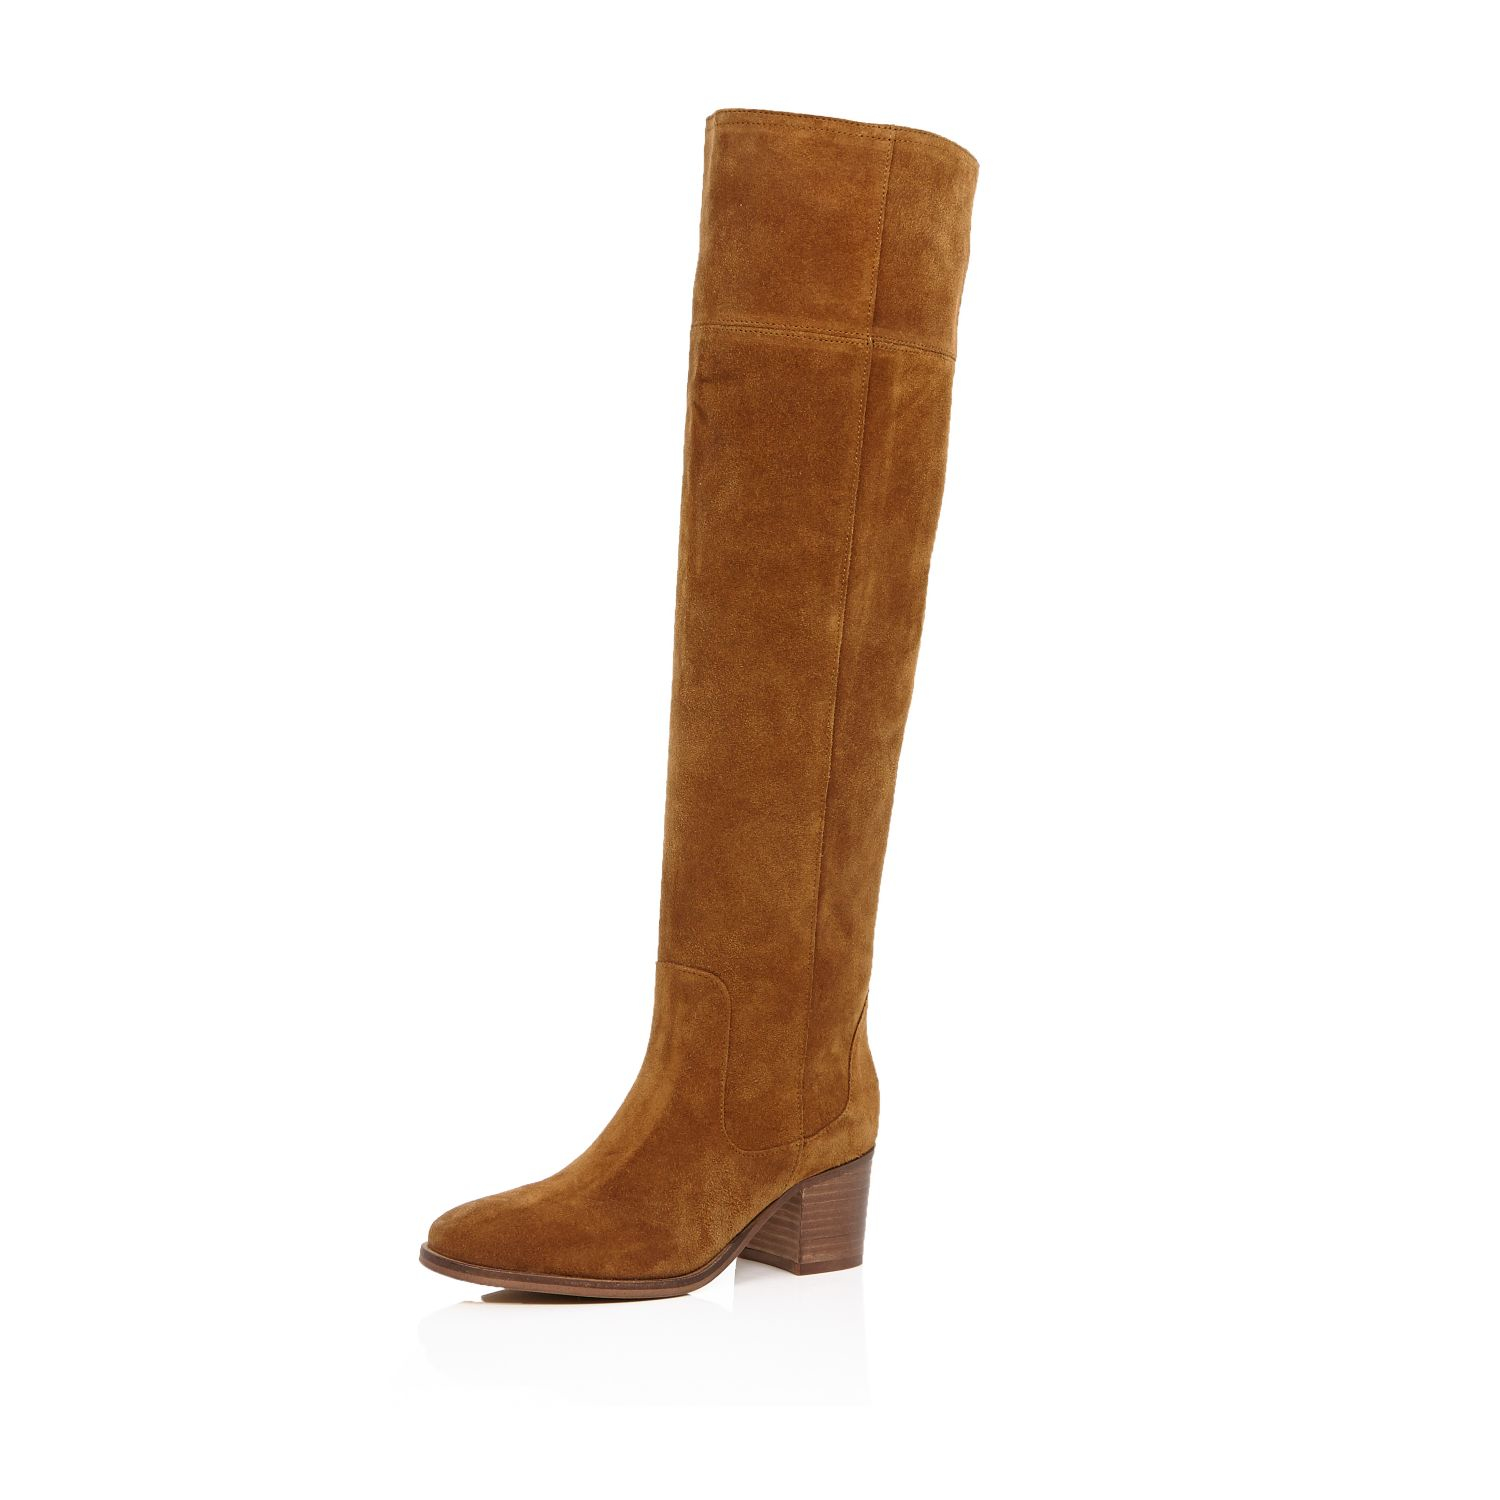 449bec56210 River Island Tan Brown Suede Knee High Boots